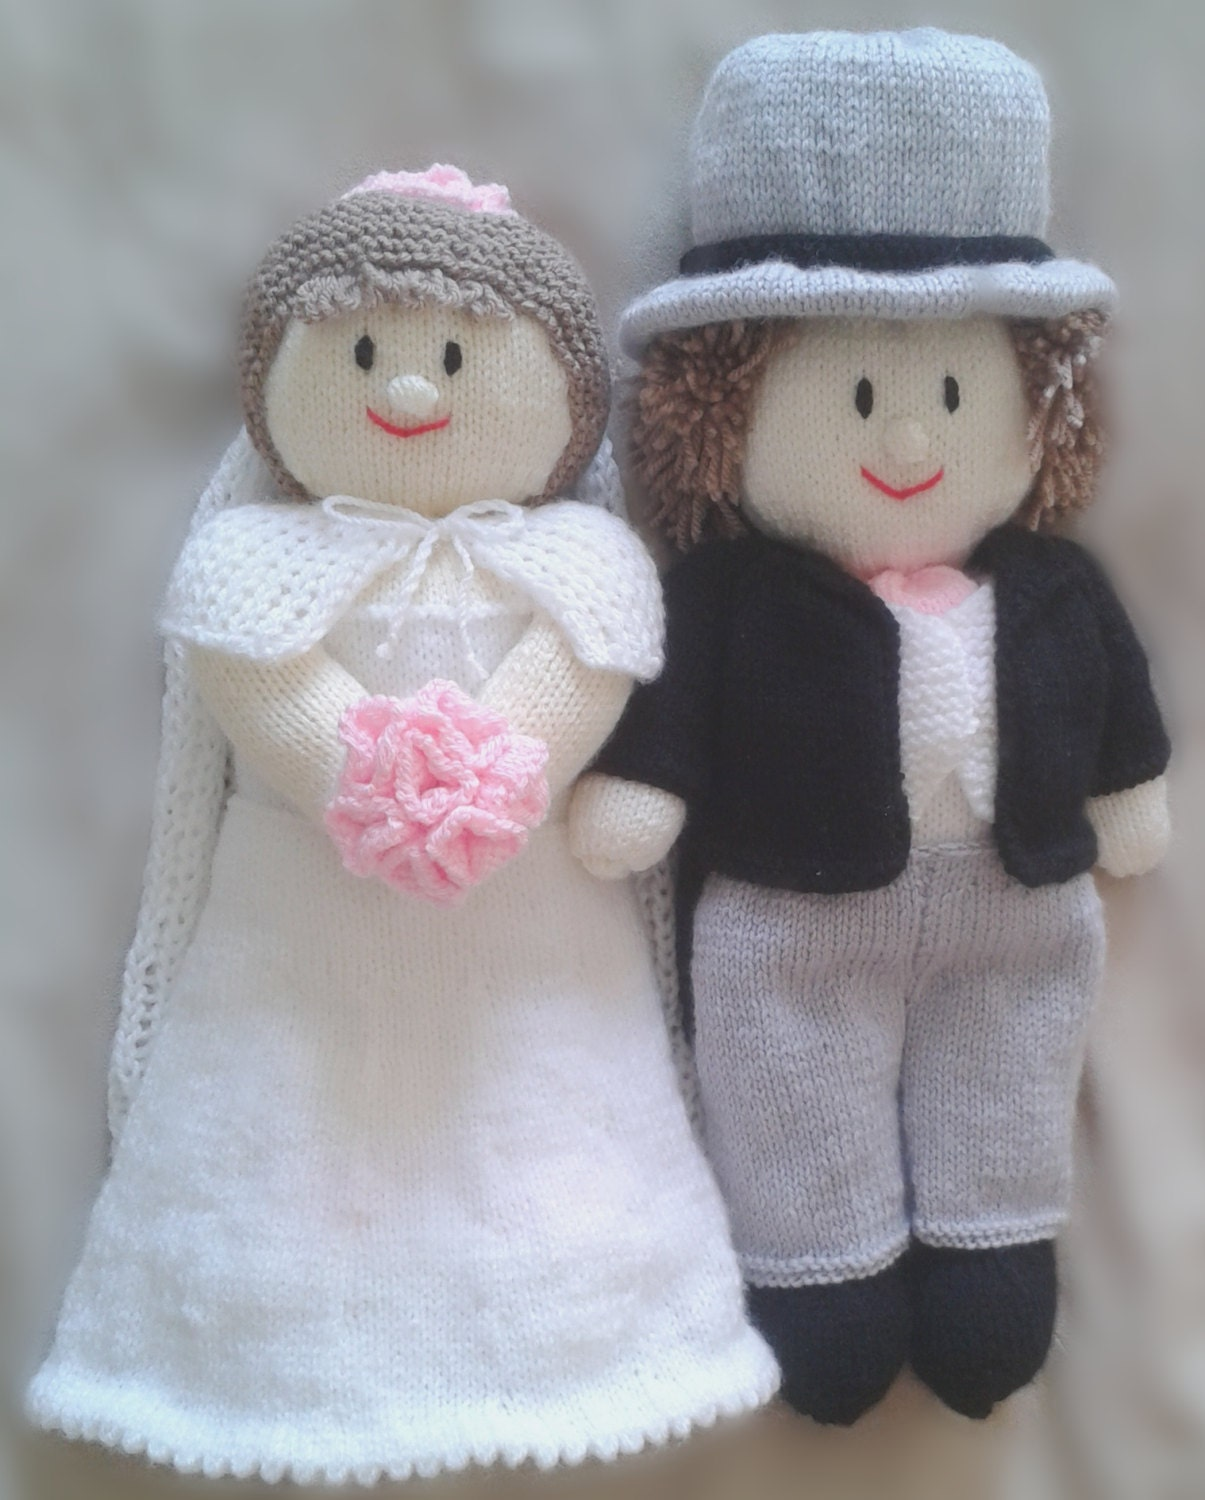 Bride and Groom Wedding Doll Knitting Pattern by KnittingByPost